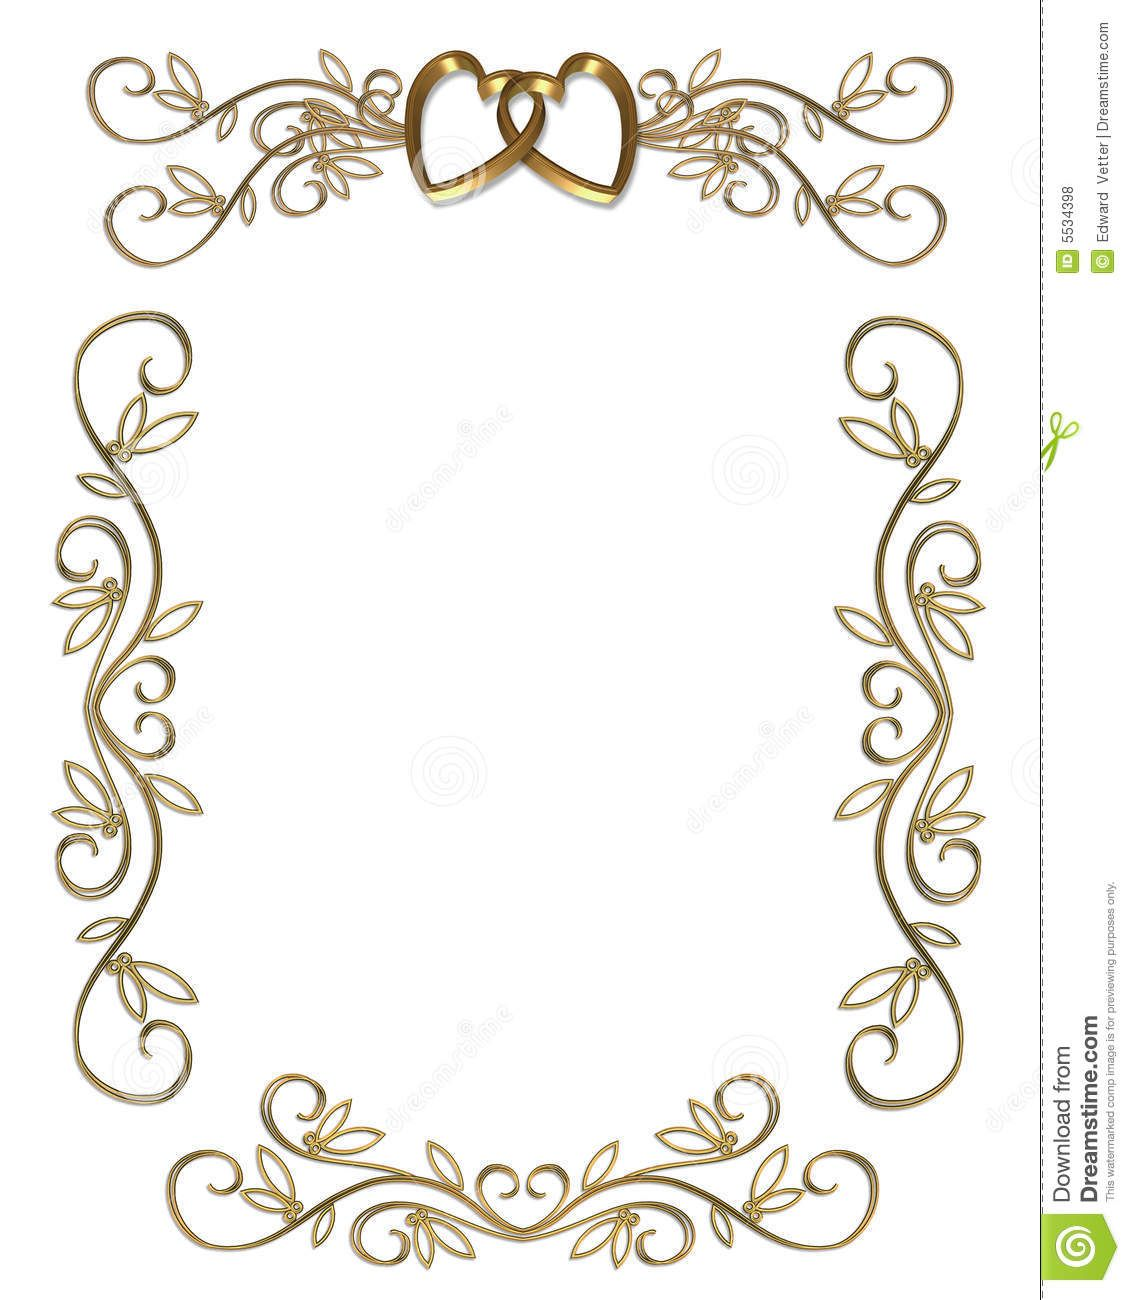 Wedding program borders clipart png library download Image result for wedding program borders free download ... png library download